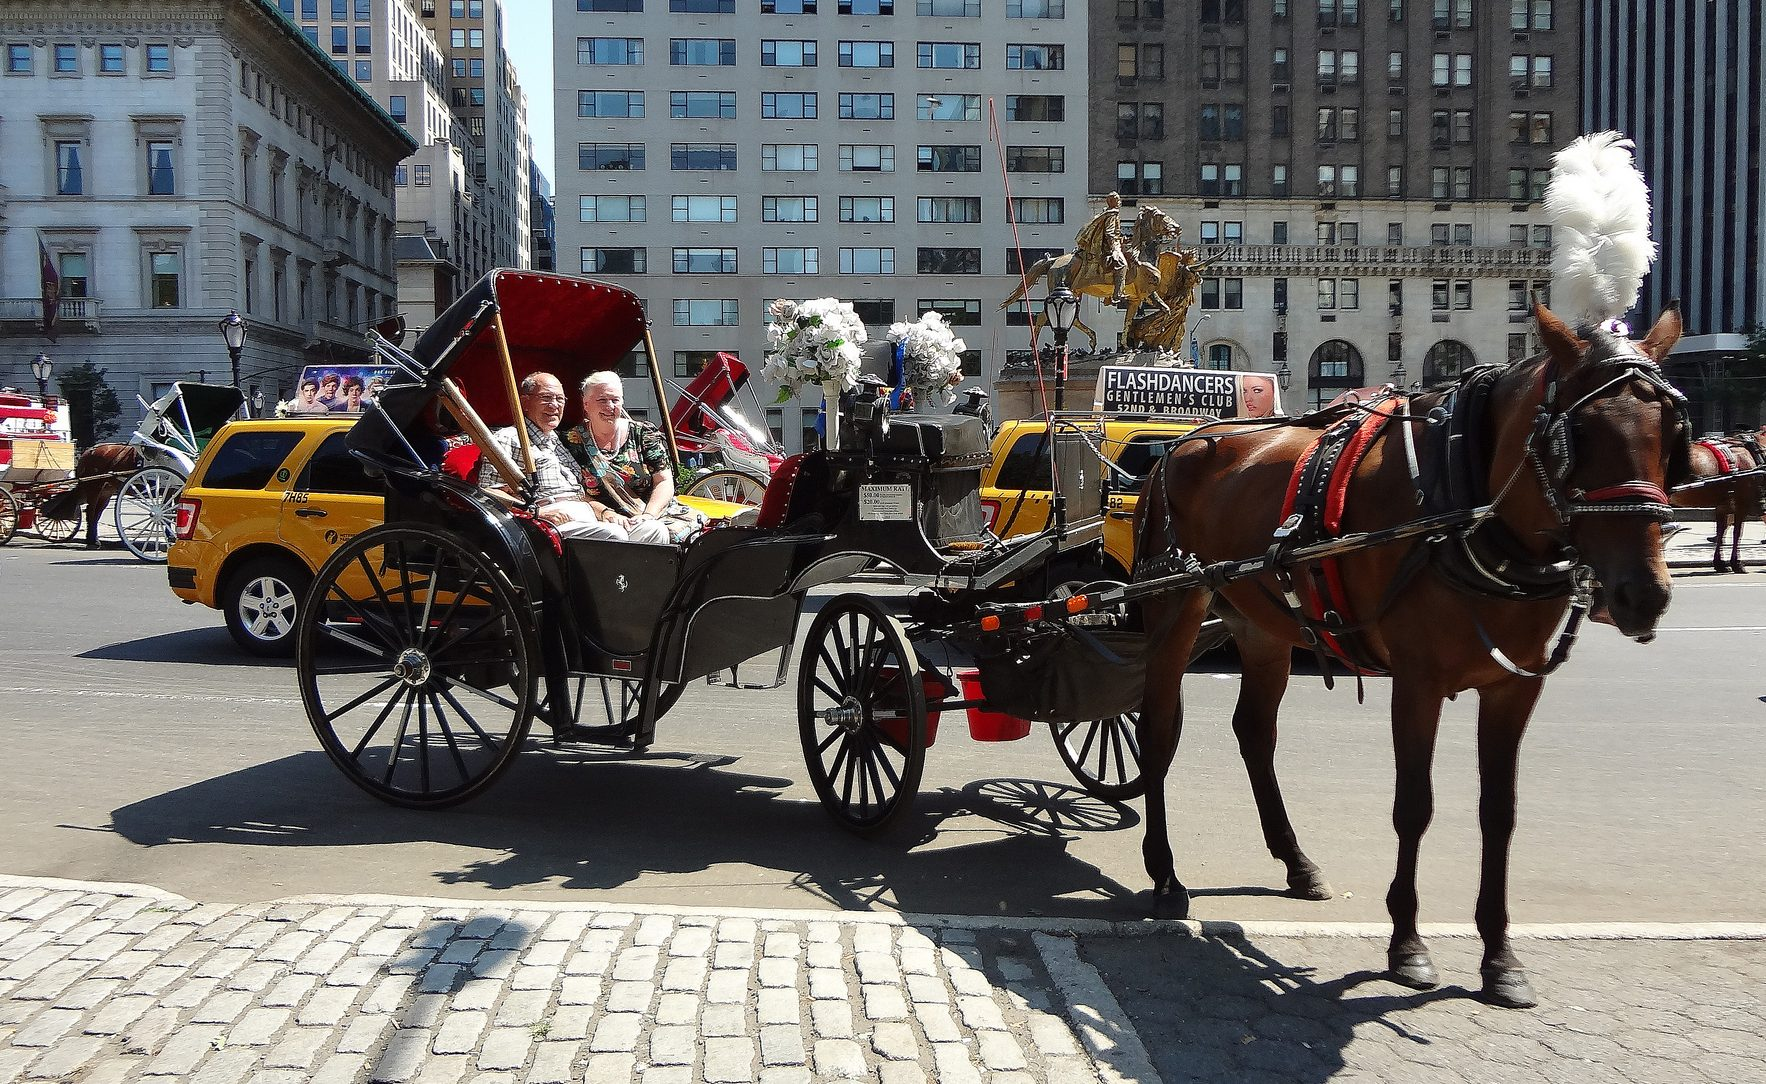 Central Park's horse-drawn carriages are getting 'designated boarding  areas' | 6sqft